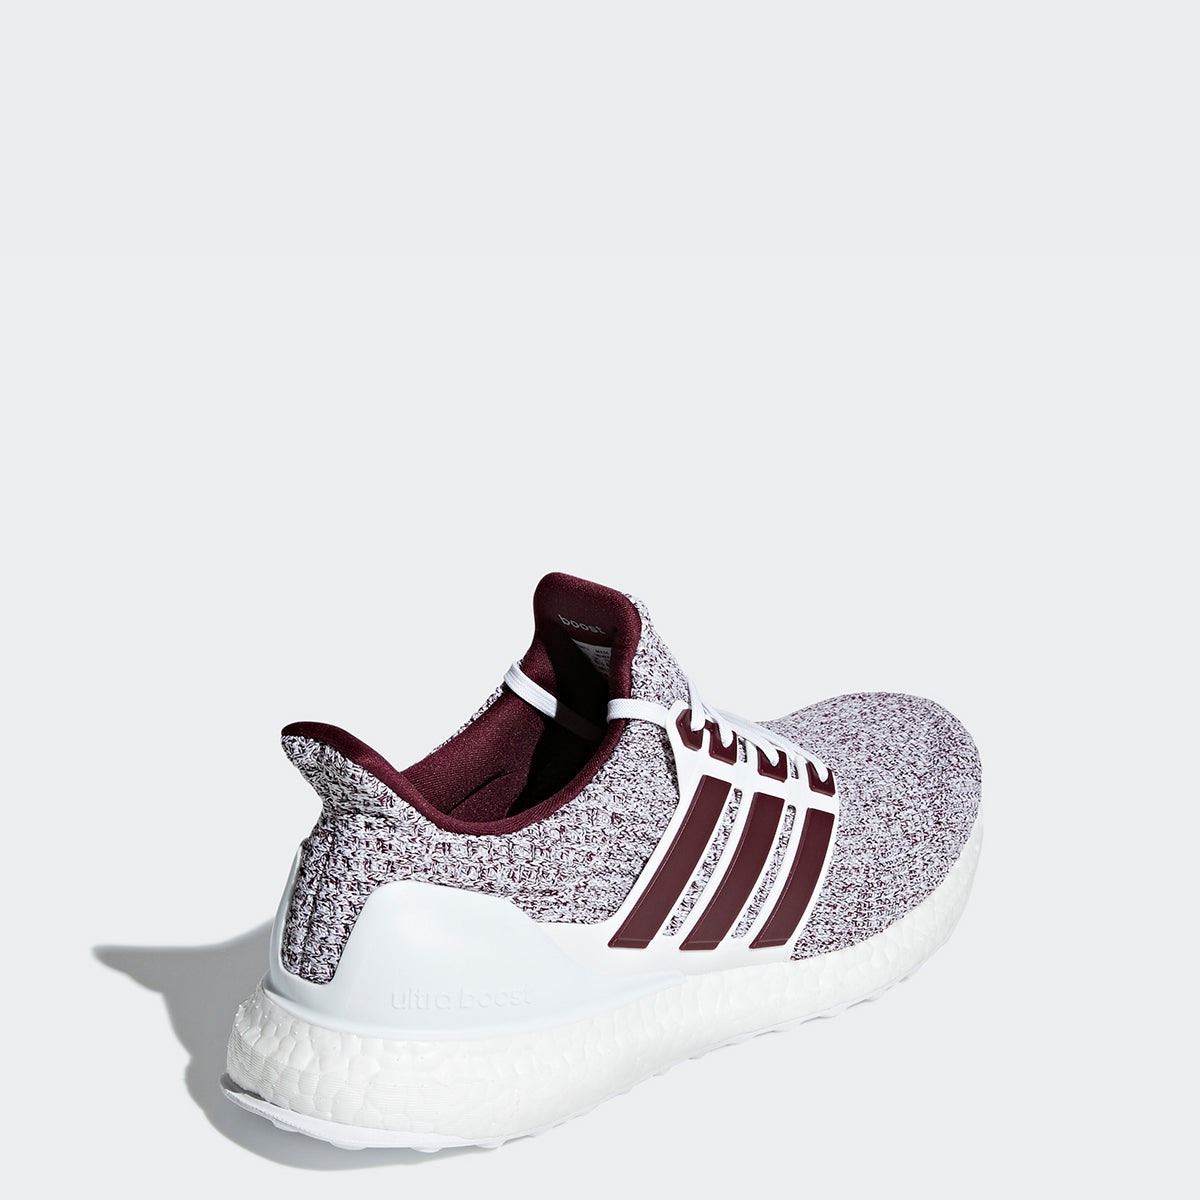 innovative design f87ad 2cff5 adidas Ultraboost Shoes White Maroon EE3705 | Chicago City ...